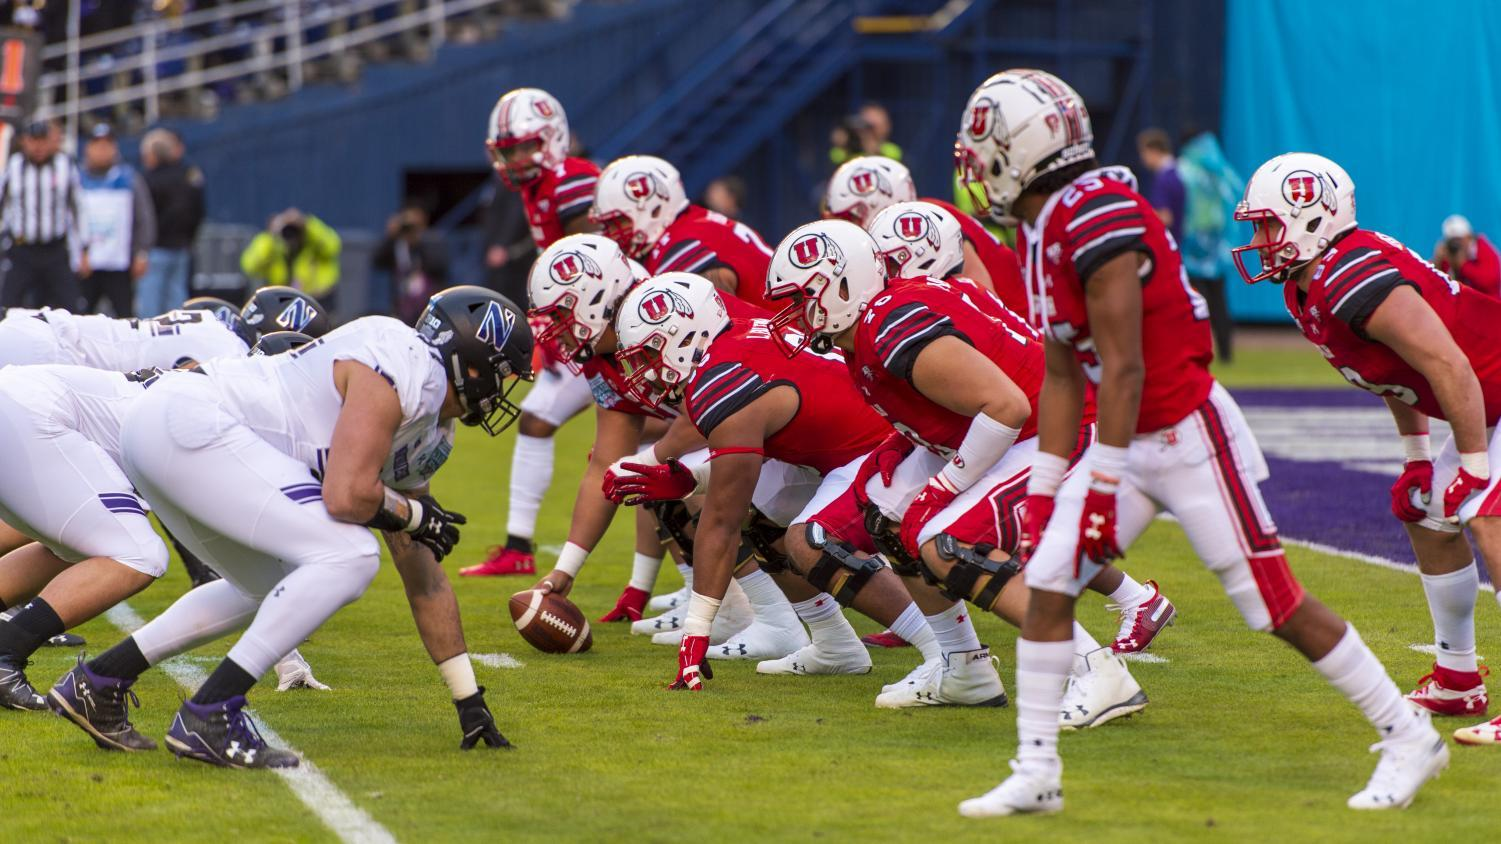 The University of Utah snaps the ball during the San Diego County Credit Union Holiday Bowl vs. Northwestern University at SDCCU Stadium in San Diego, California on Monday, Dec. 31, 2018. (Photo by Kiffer Creveling | The Daily Utah Chronicle)